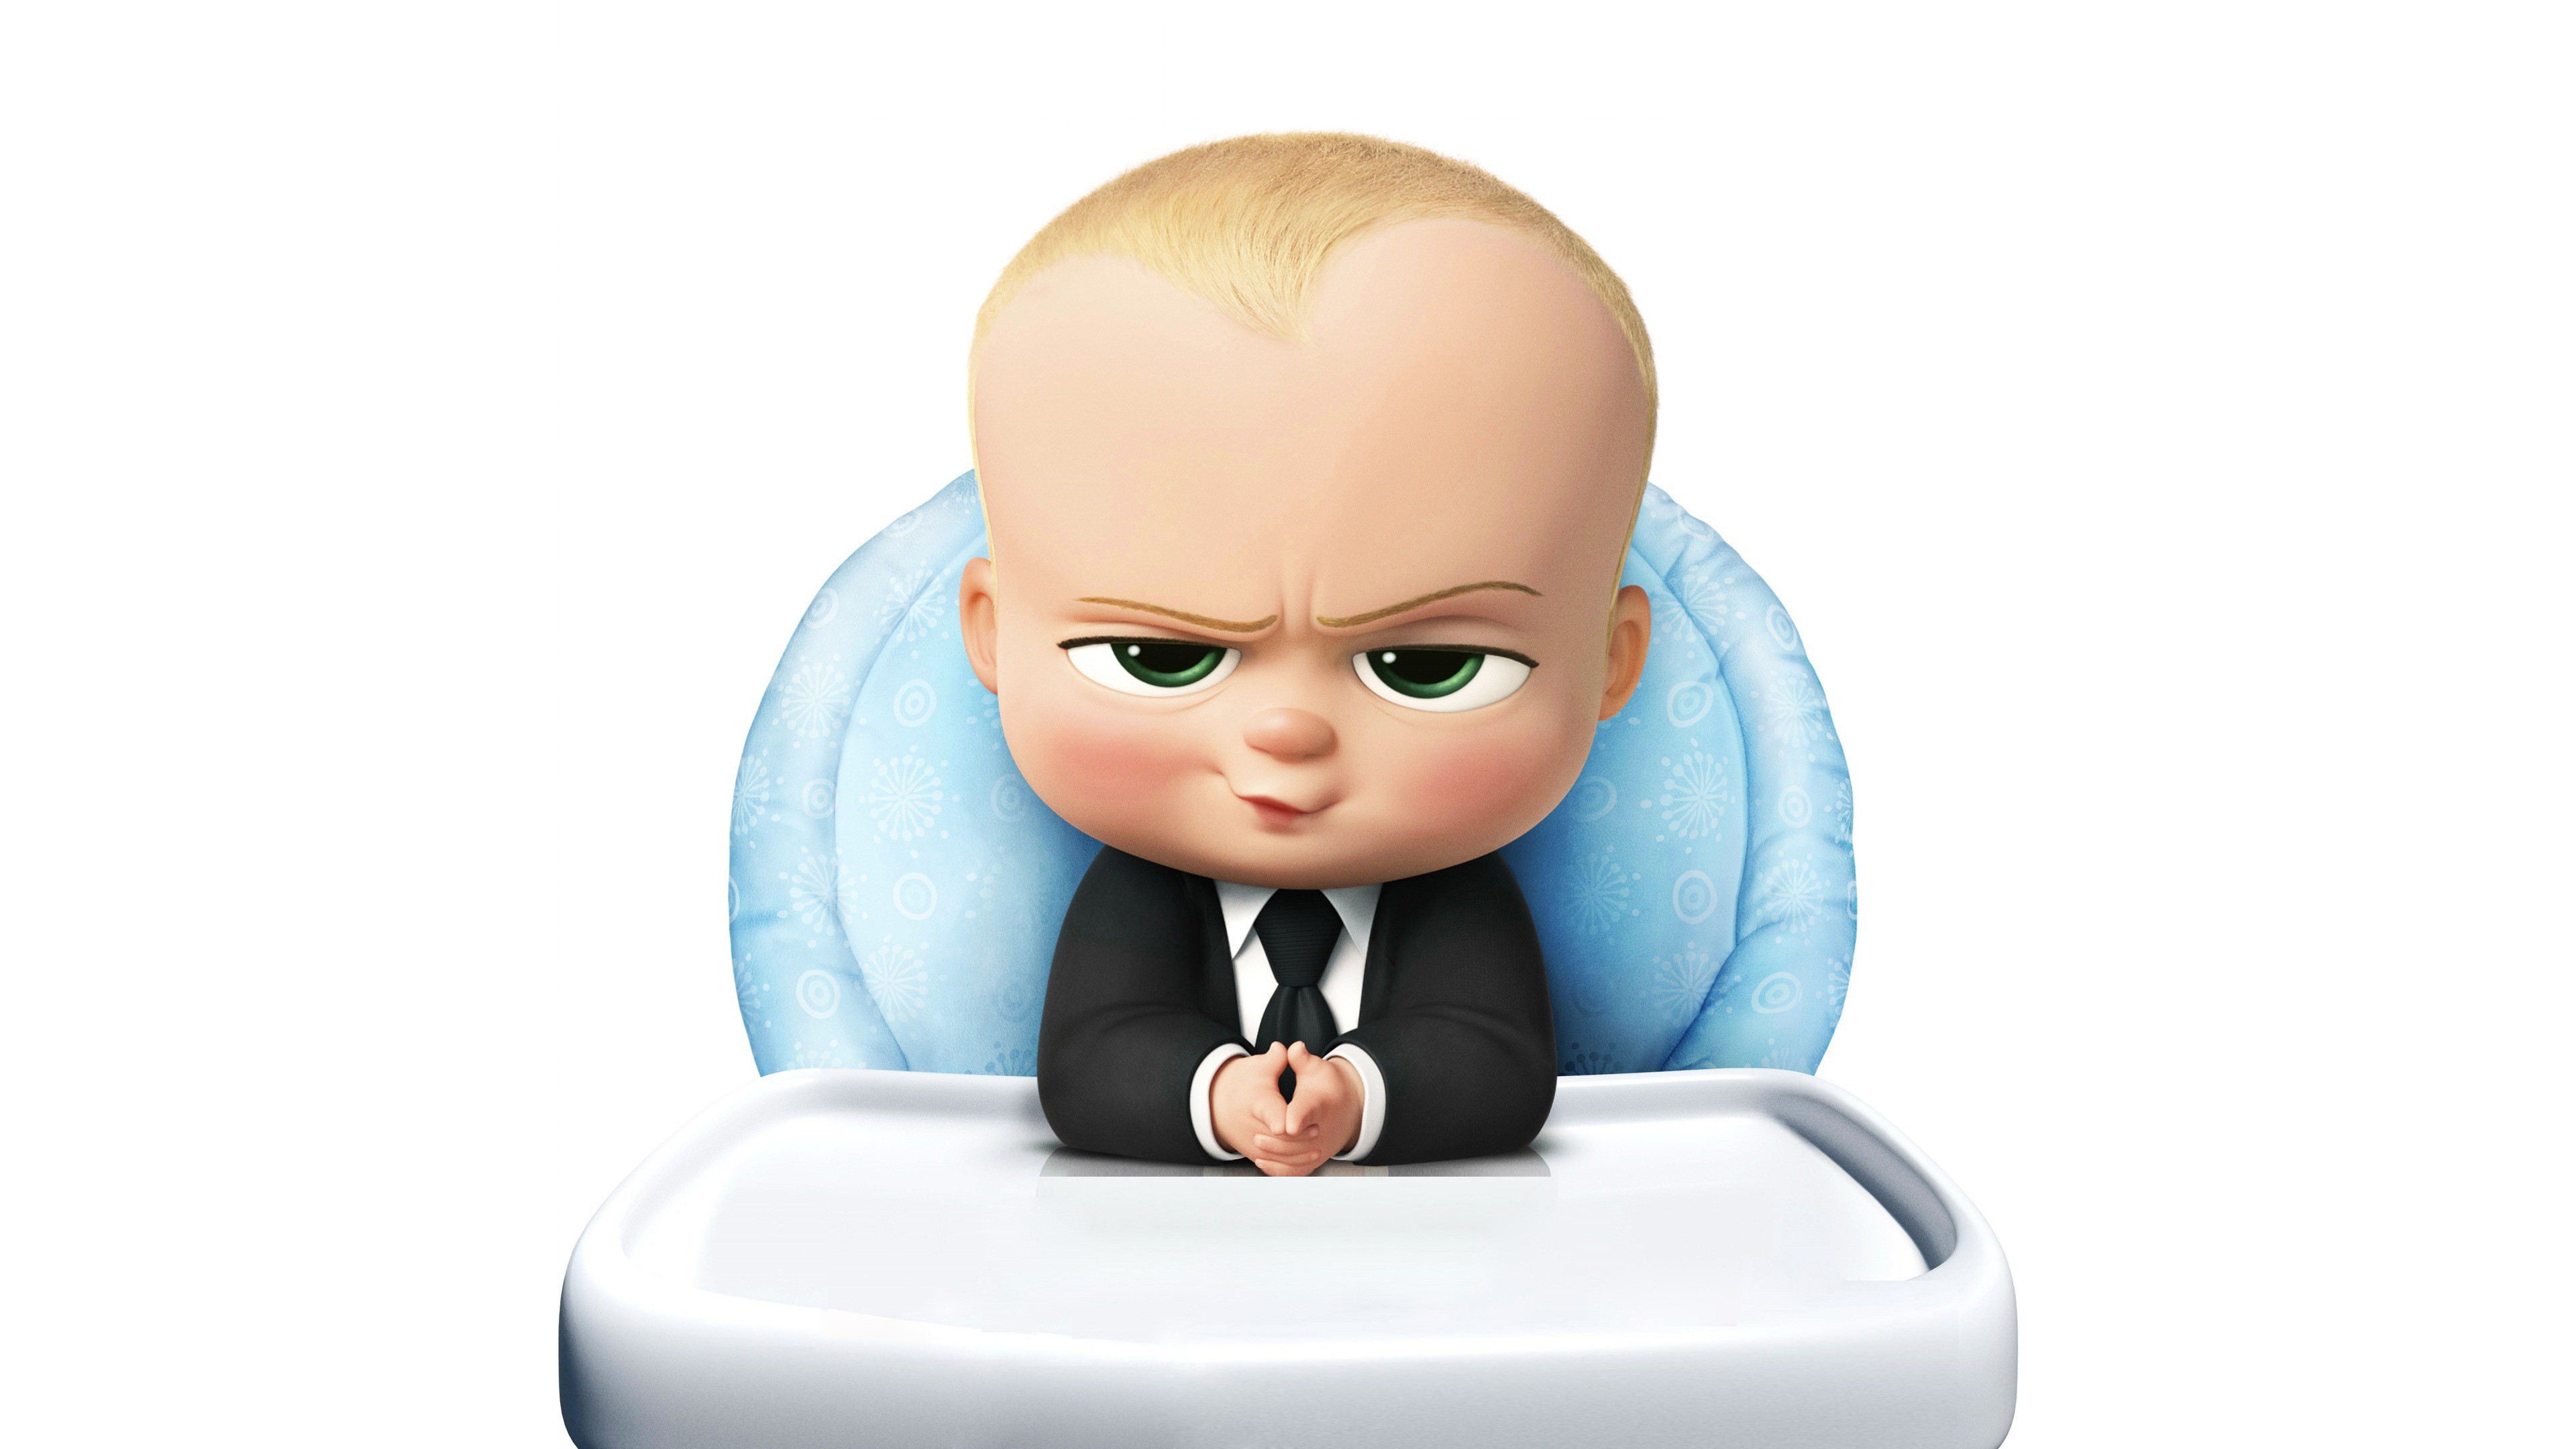 Wallpaper the boss baby baby costume best animation - Baby animation wallpaper ...